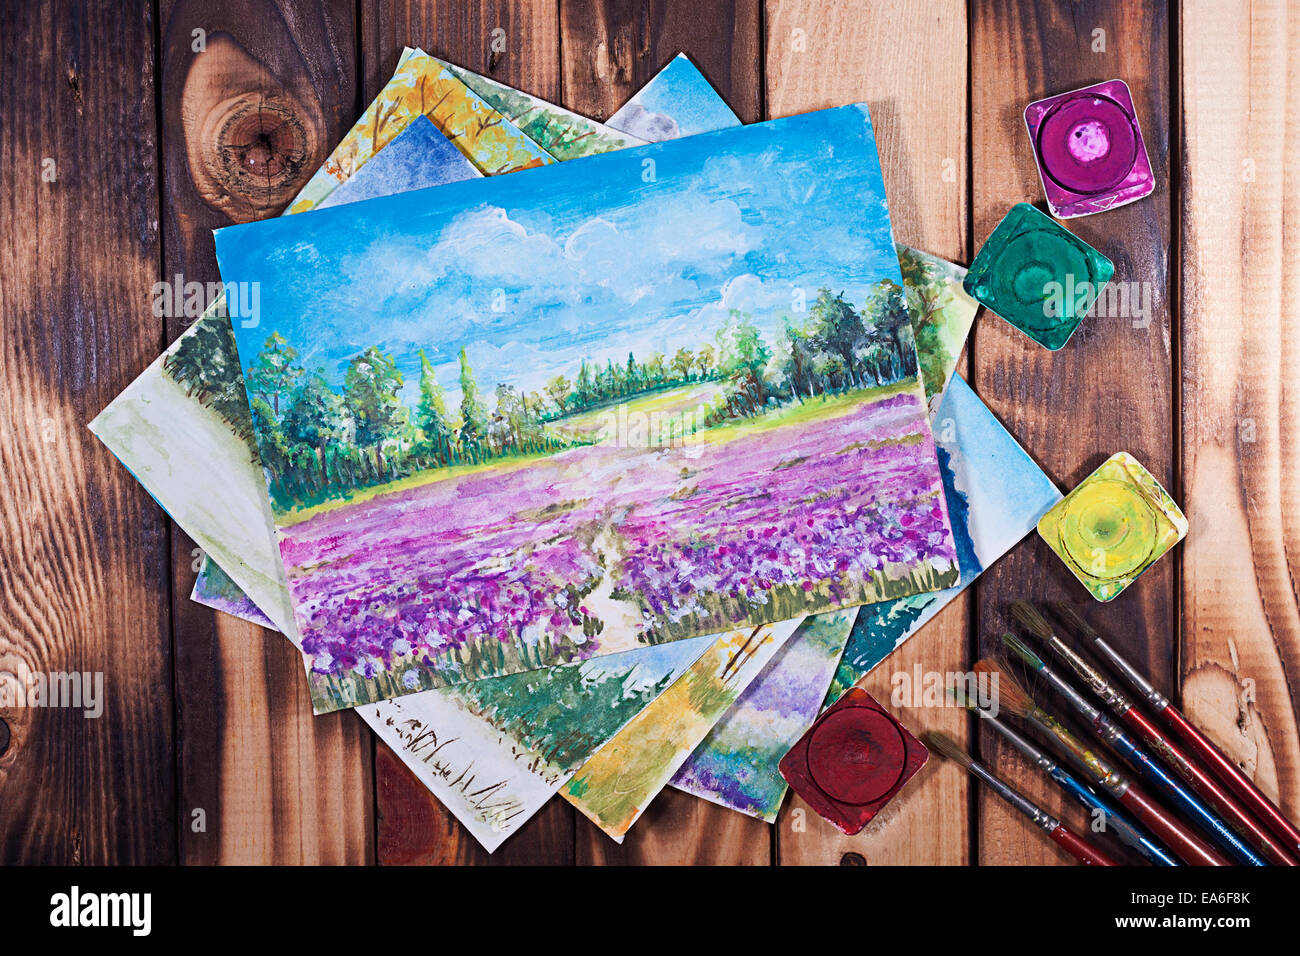 Watercolors and brushes Stock Photo